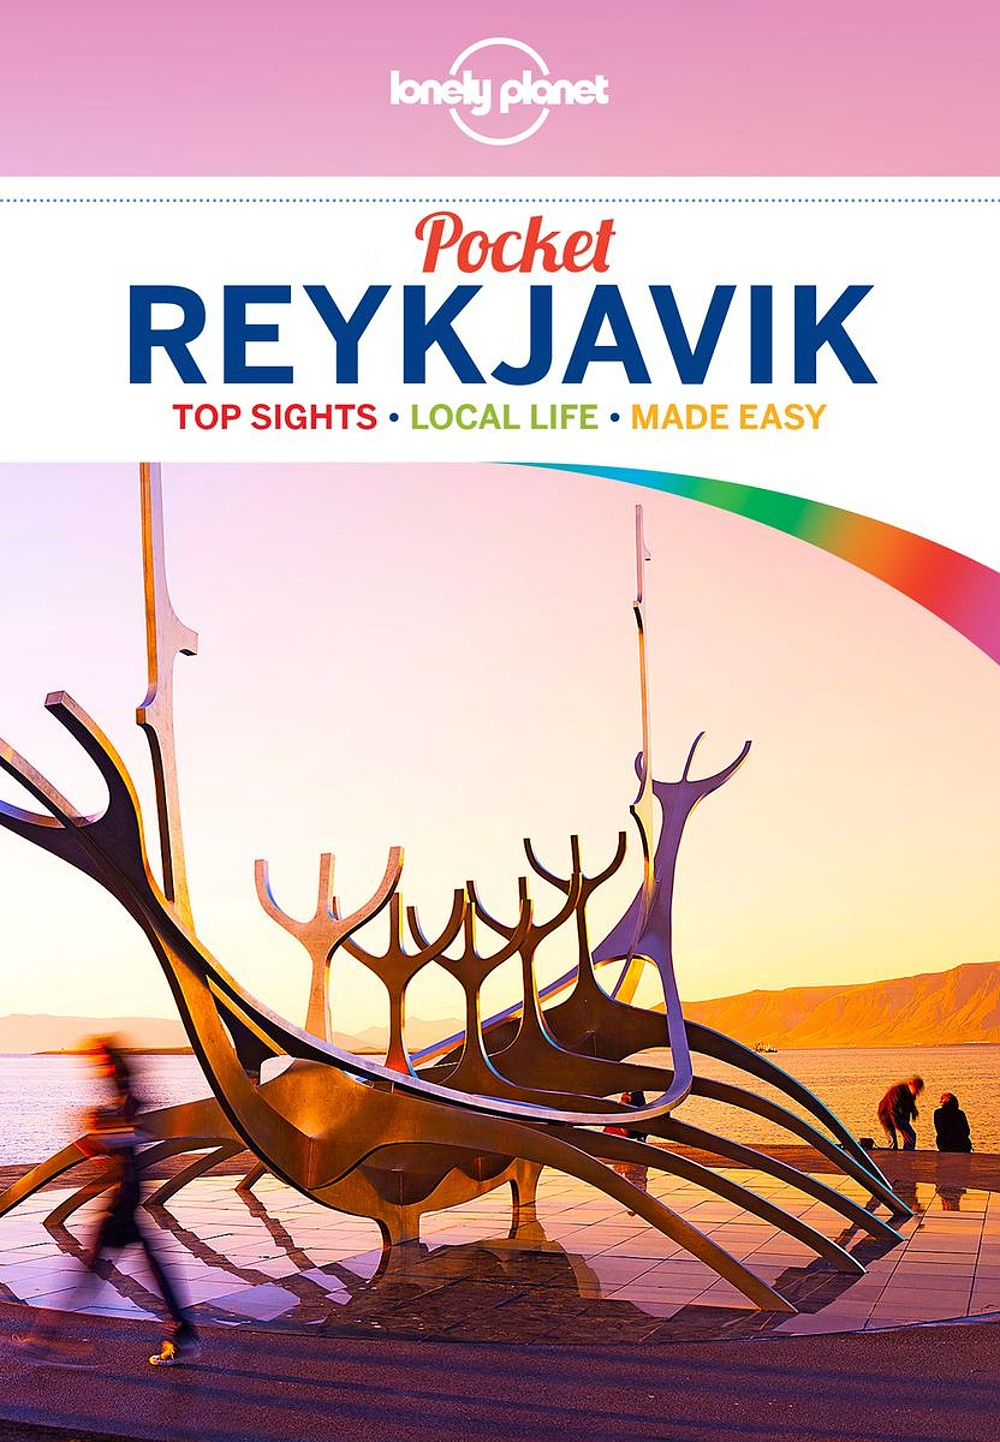 Lonely Planet Reykjavik Pocket Guide 2.